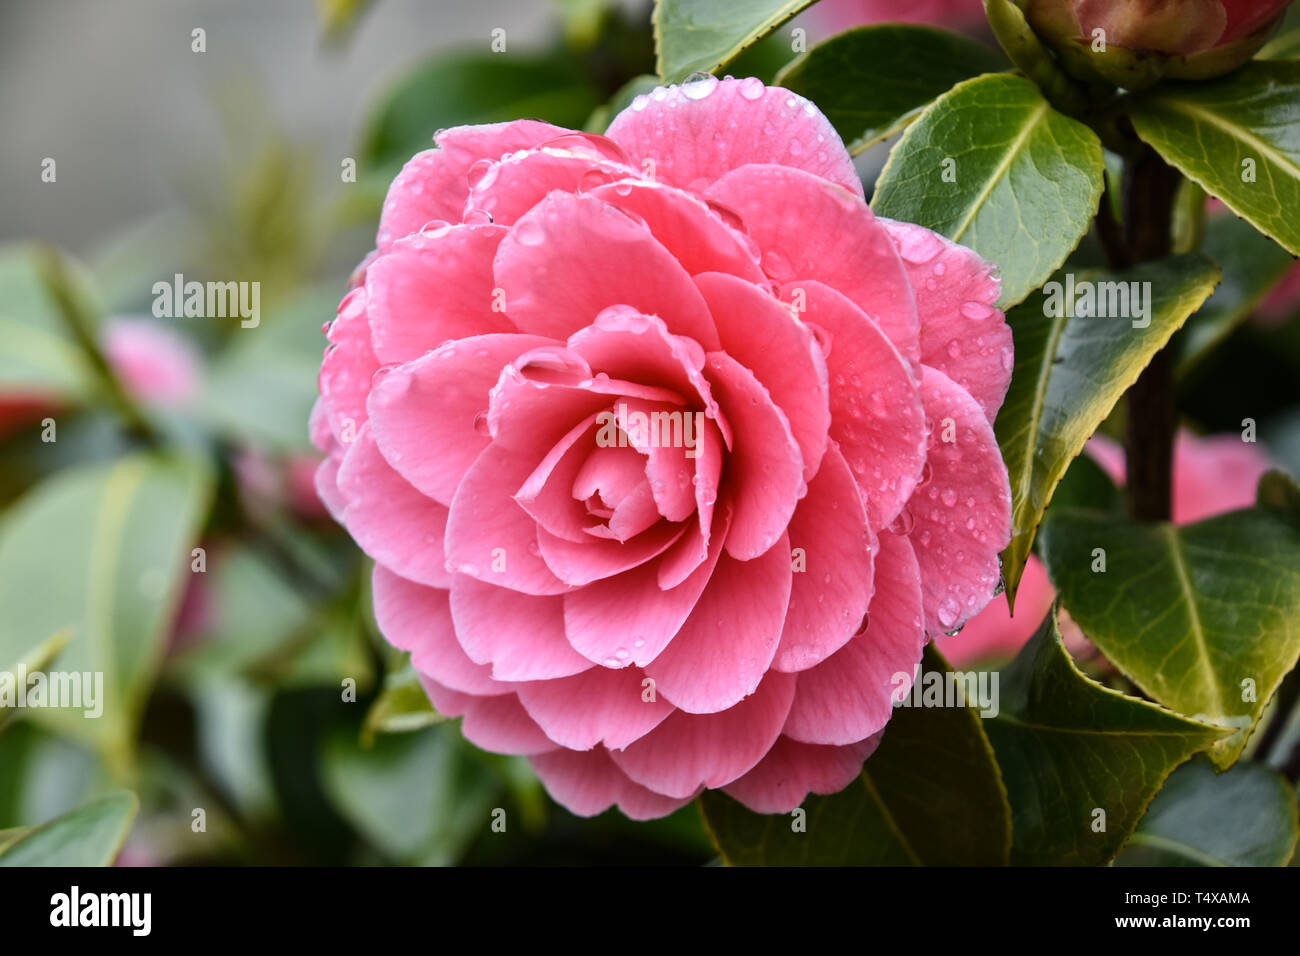 Pink Camellia flower with raindrops on petals, after rain, close-up - Stock Image